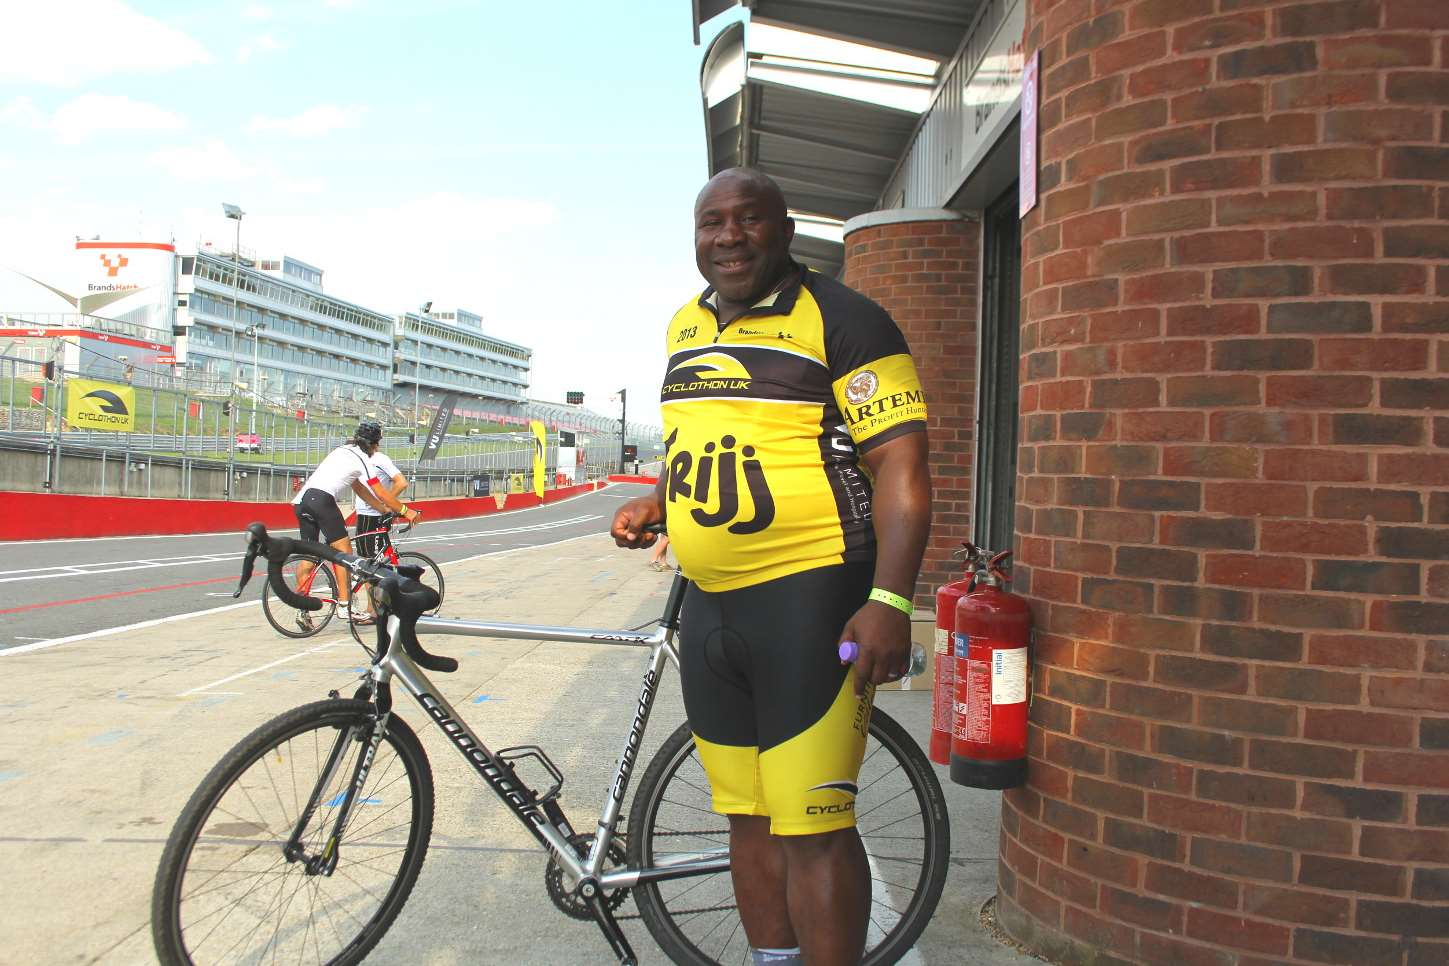 Cyclothon UK was set up by former England Rugby player Victor Ubogu, who regularly competes in the event